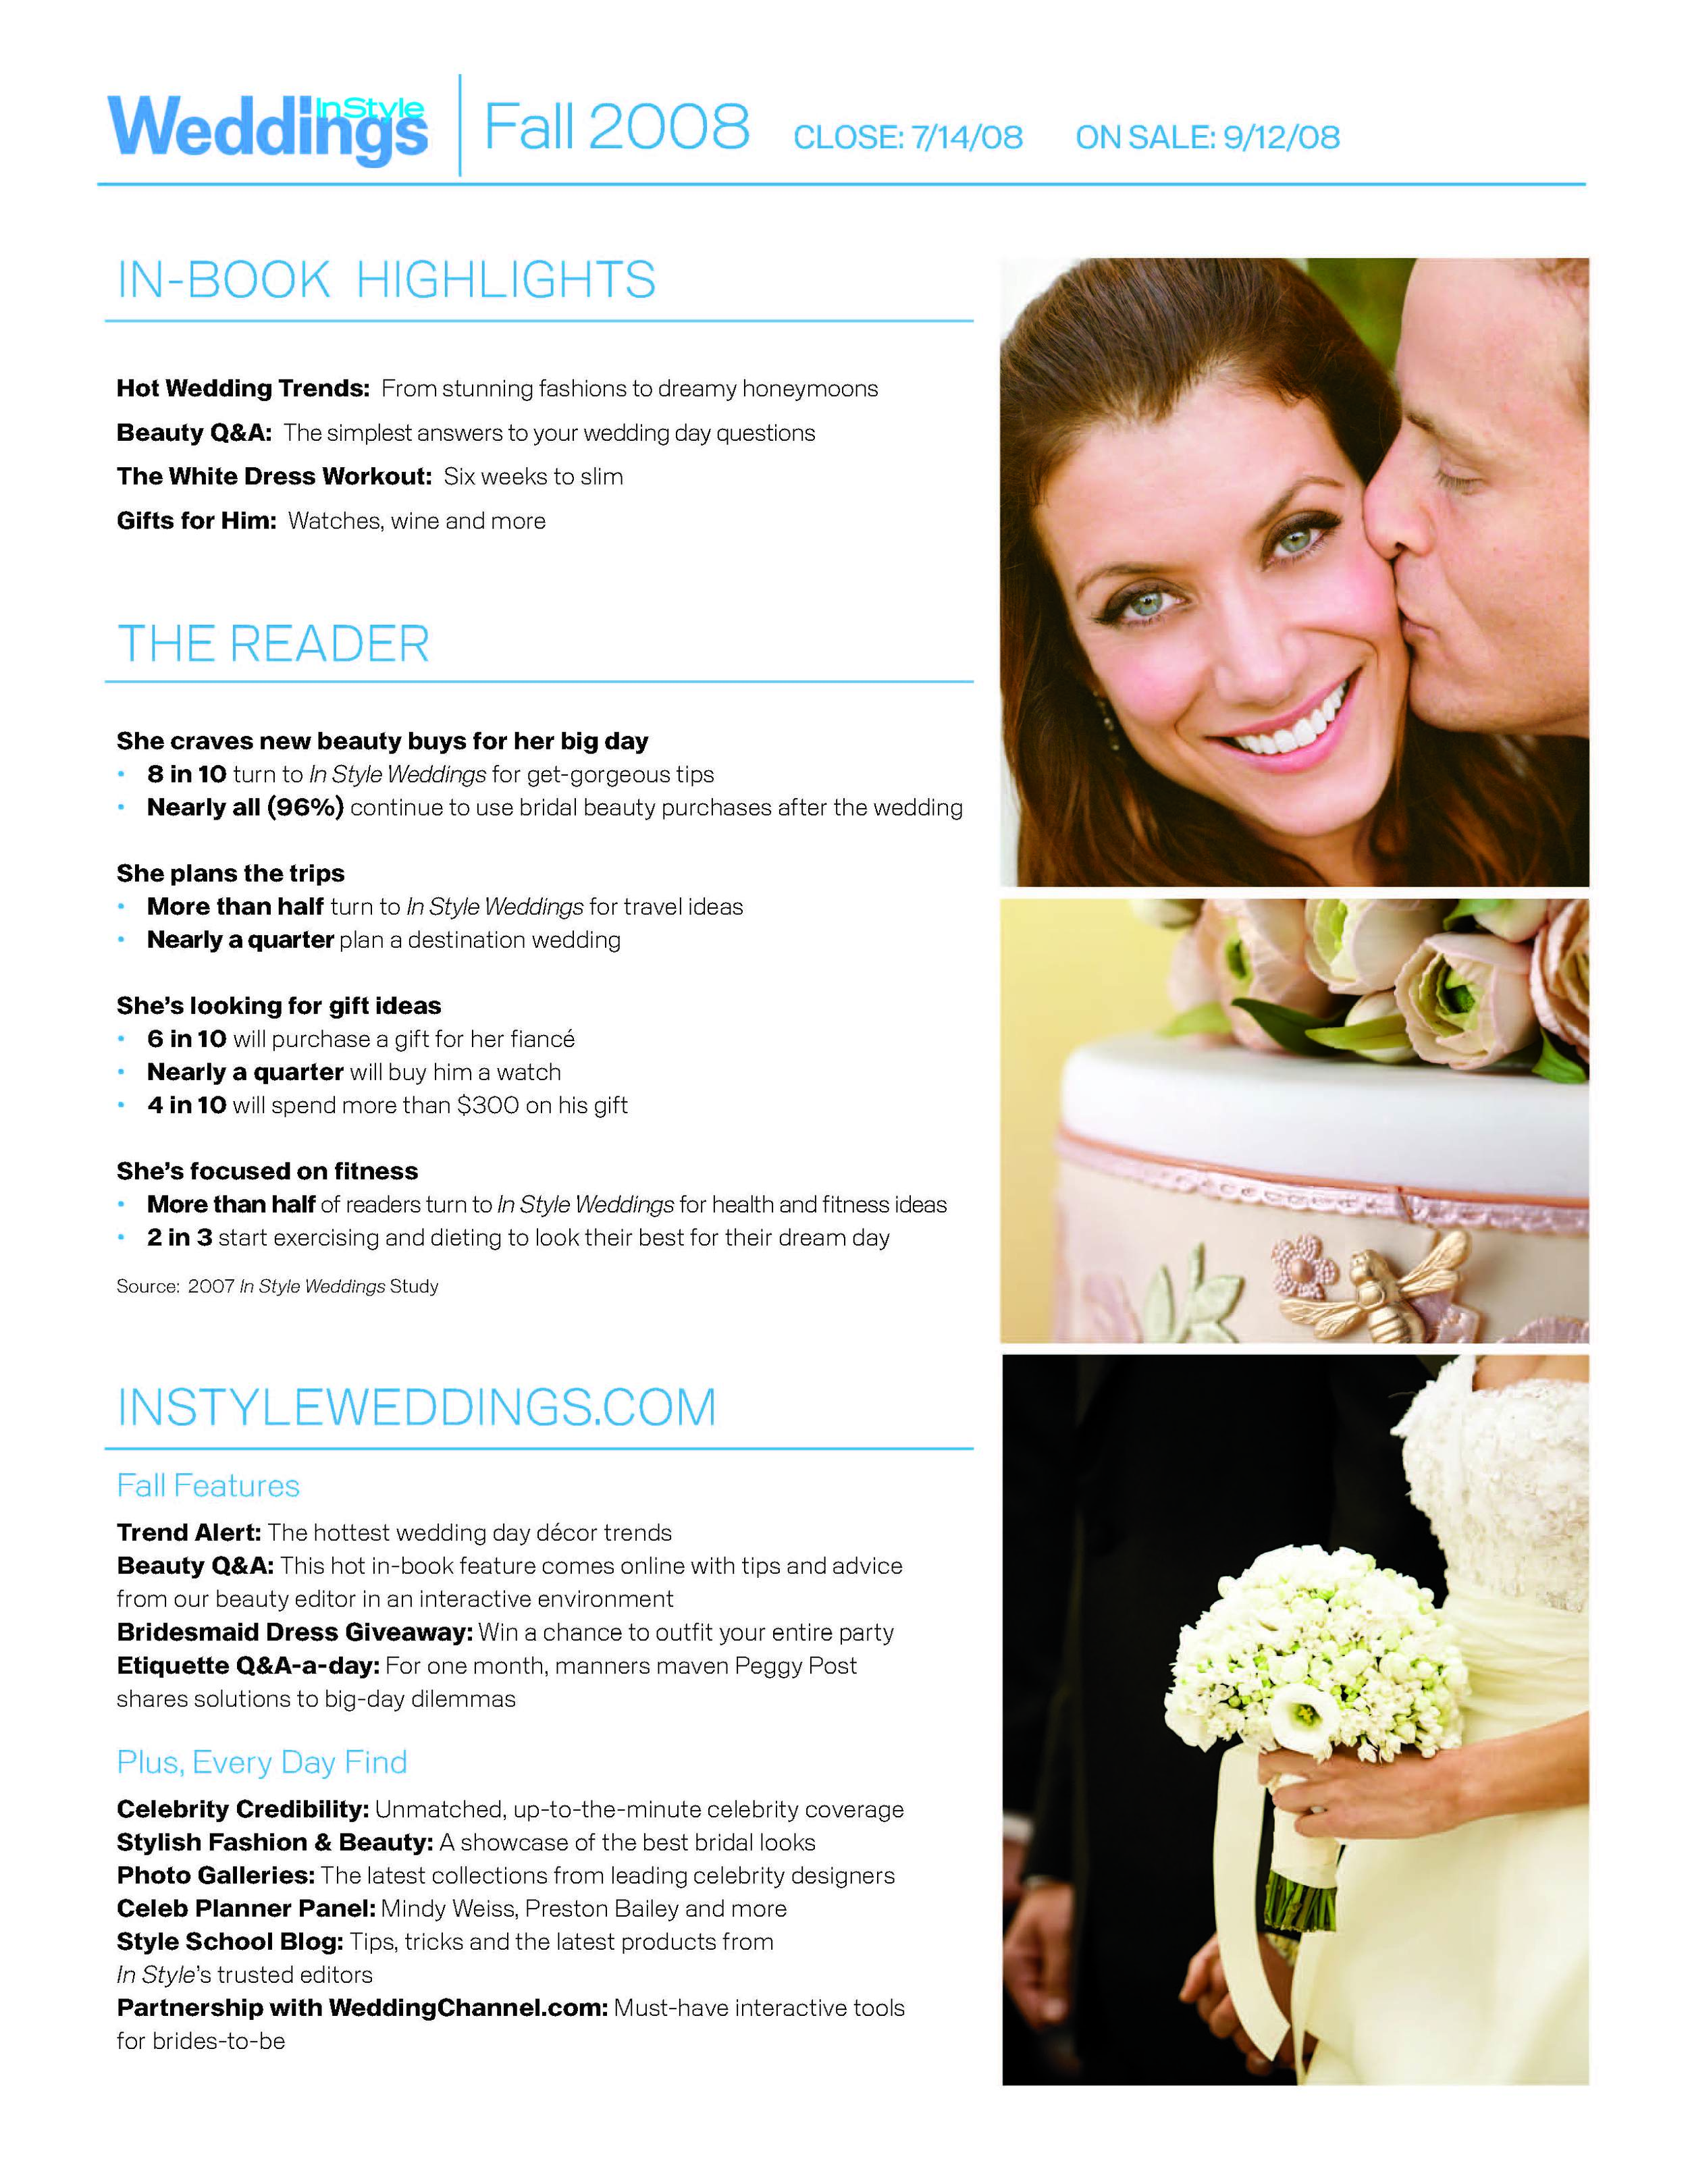 weddings_Fall08SS_Page_1.jpg